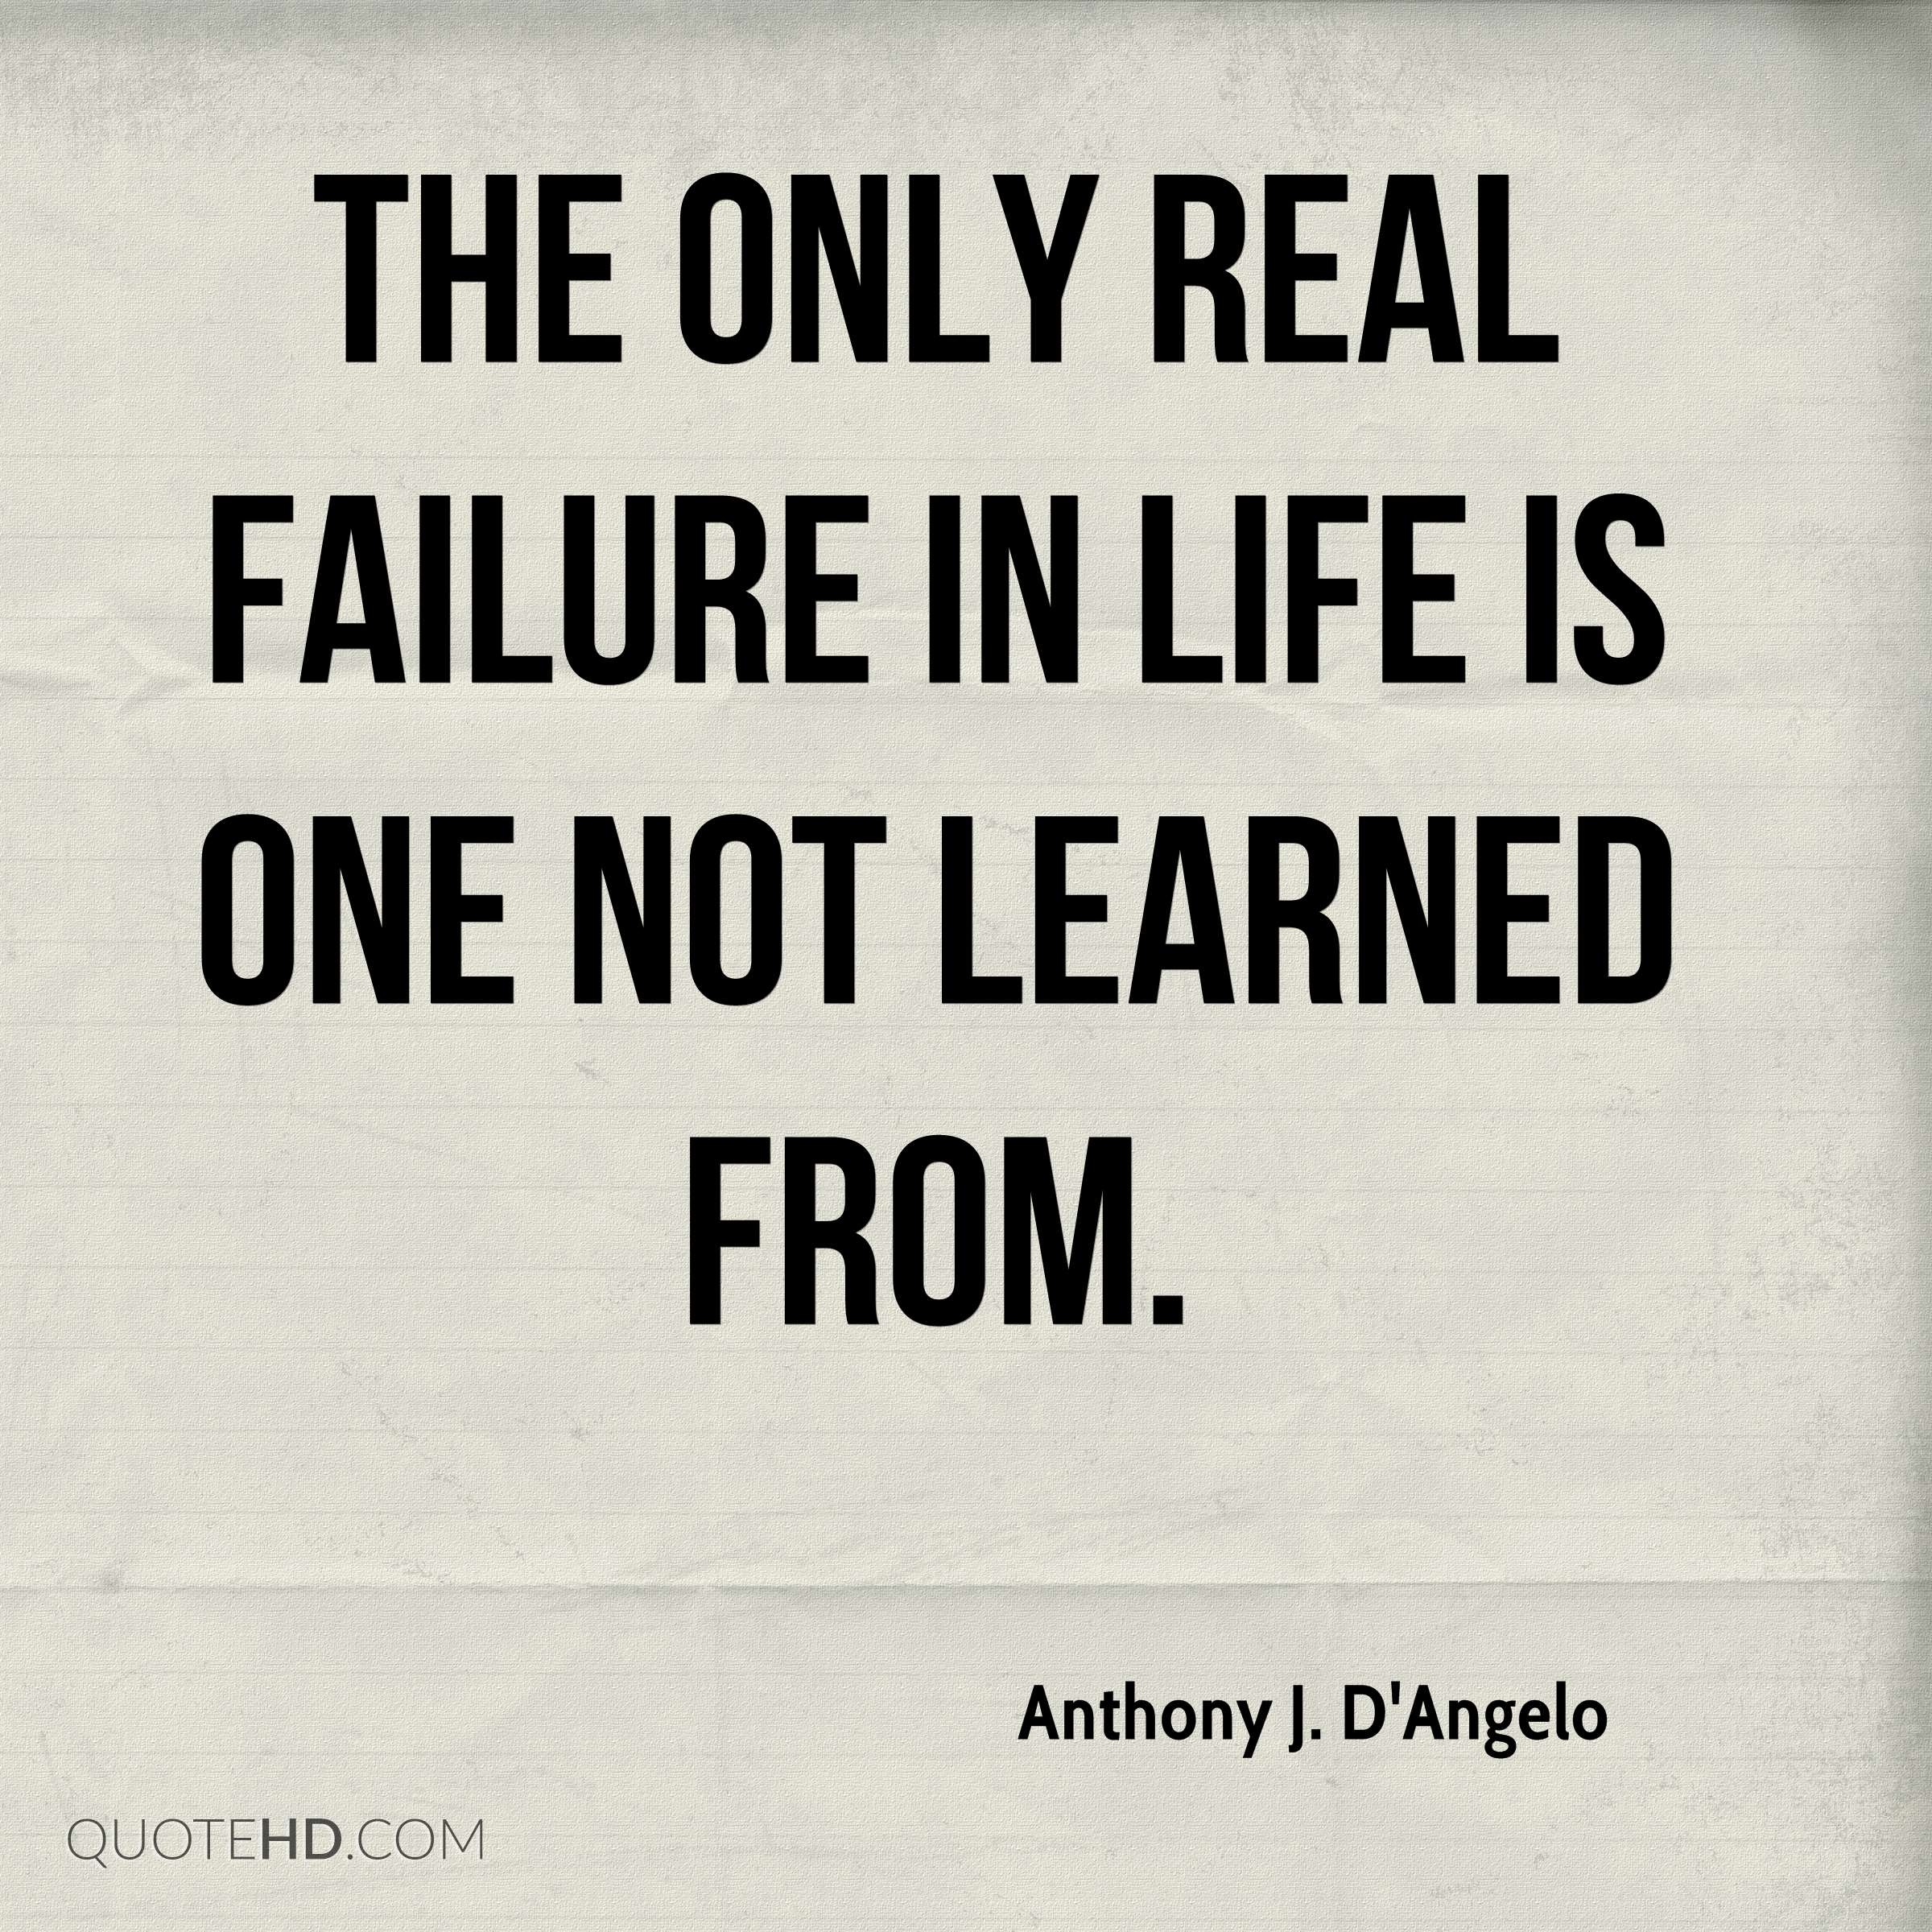 Quotes About Failure In Life: Anthony J. D'Angelo Education Quotes